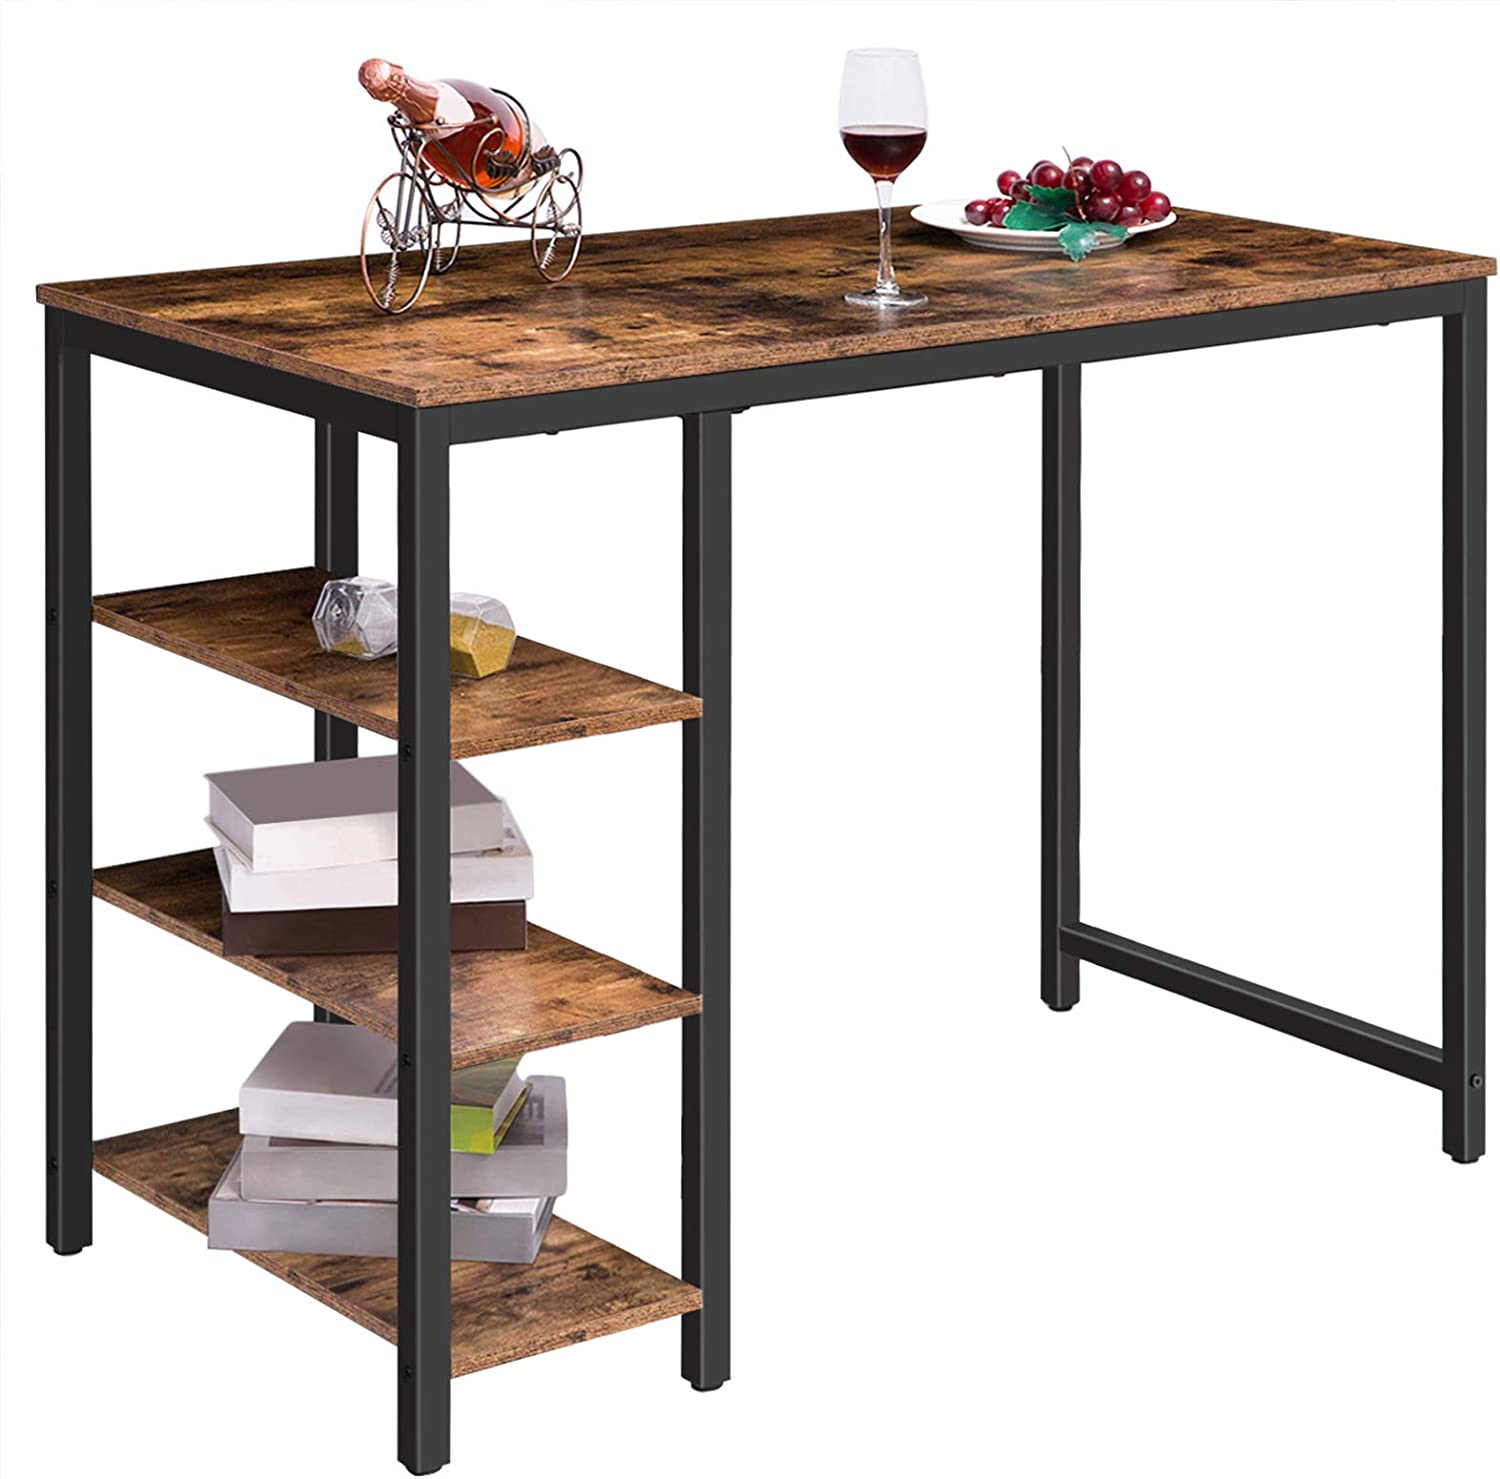 HOOBRO Bar Table Kitchen Table with 9 Shelves Rectangular Dining Table with  Metal Frame 9 x 9 x 9 cm Sturdy Easy Assembly for Living Room Dining ...